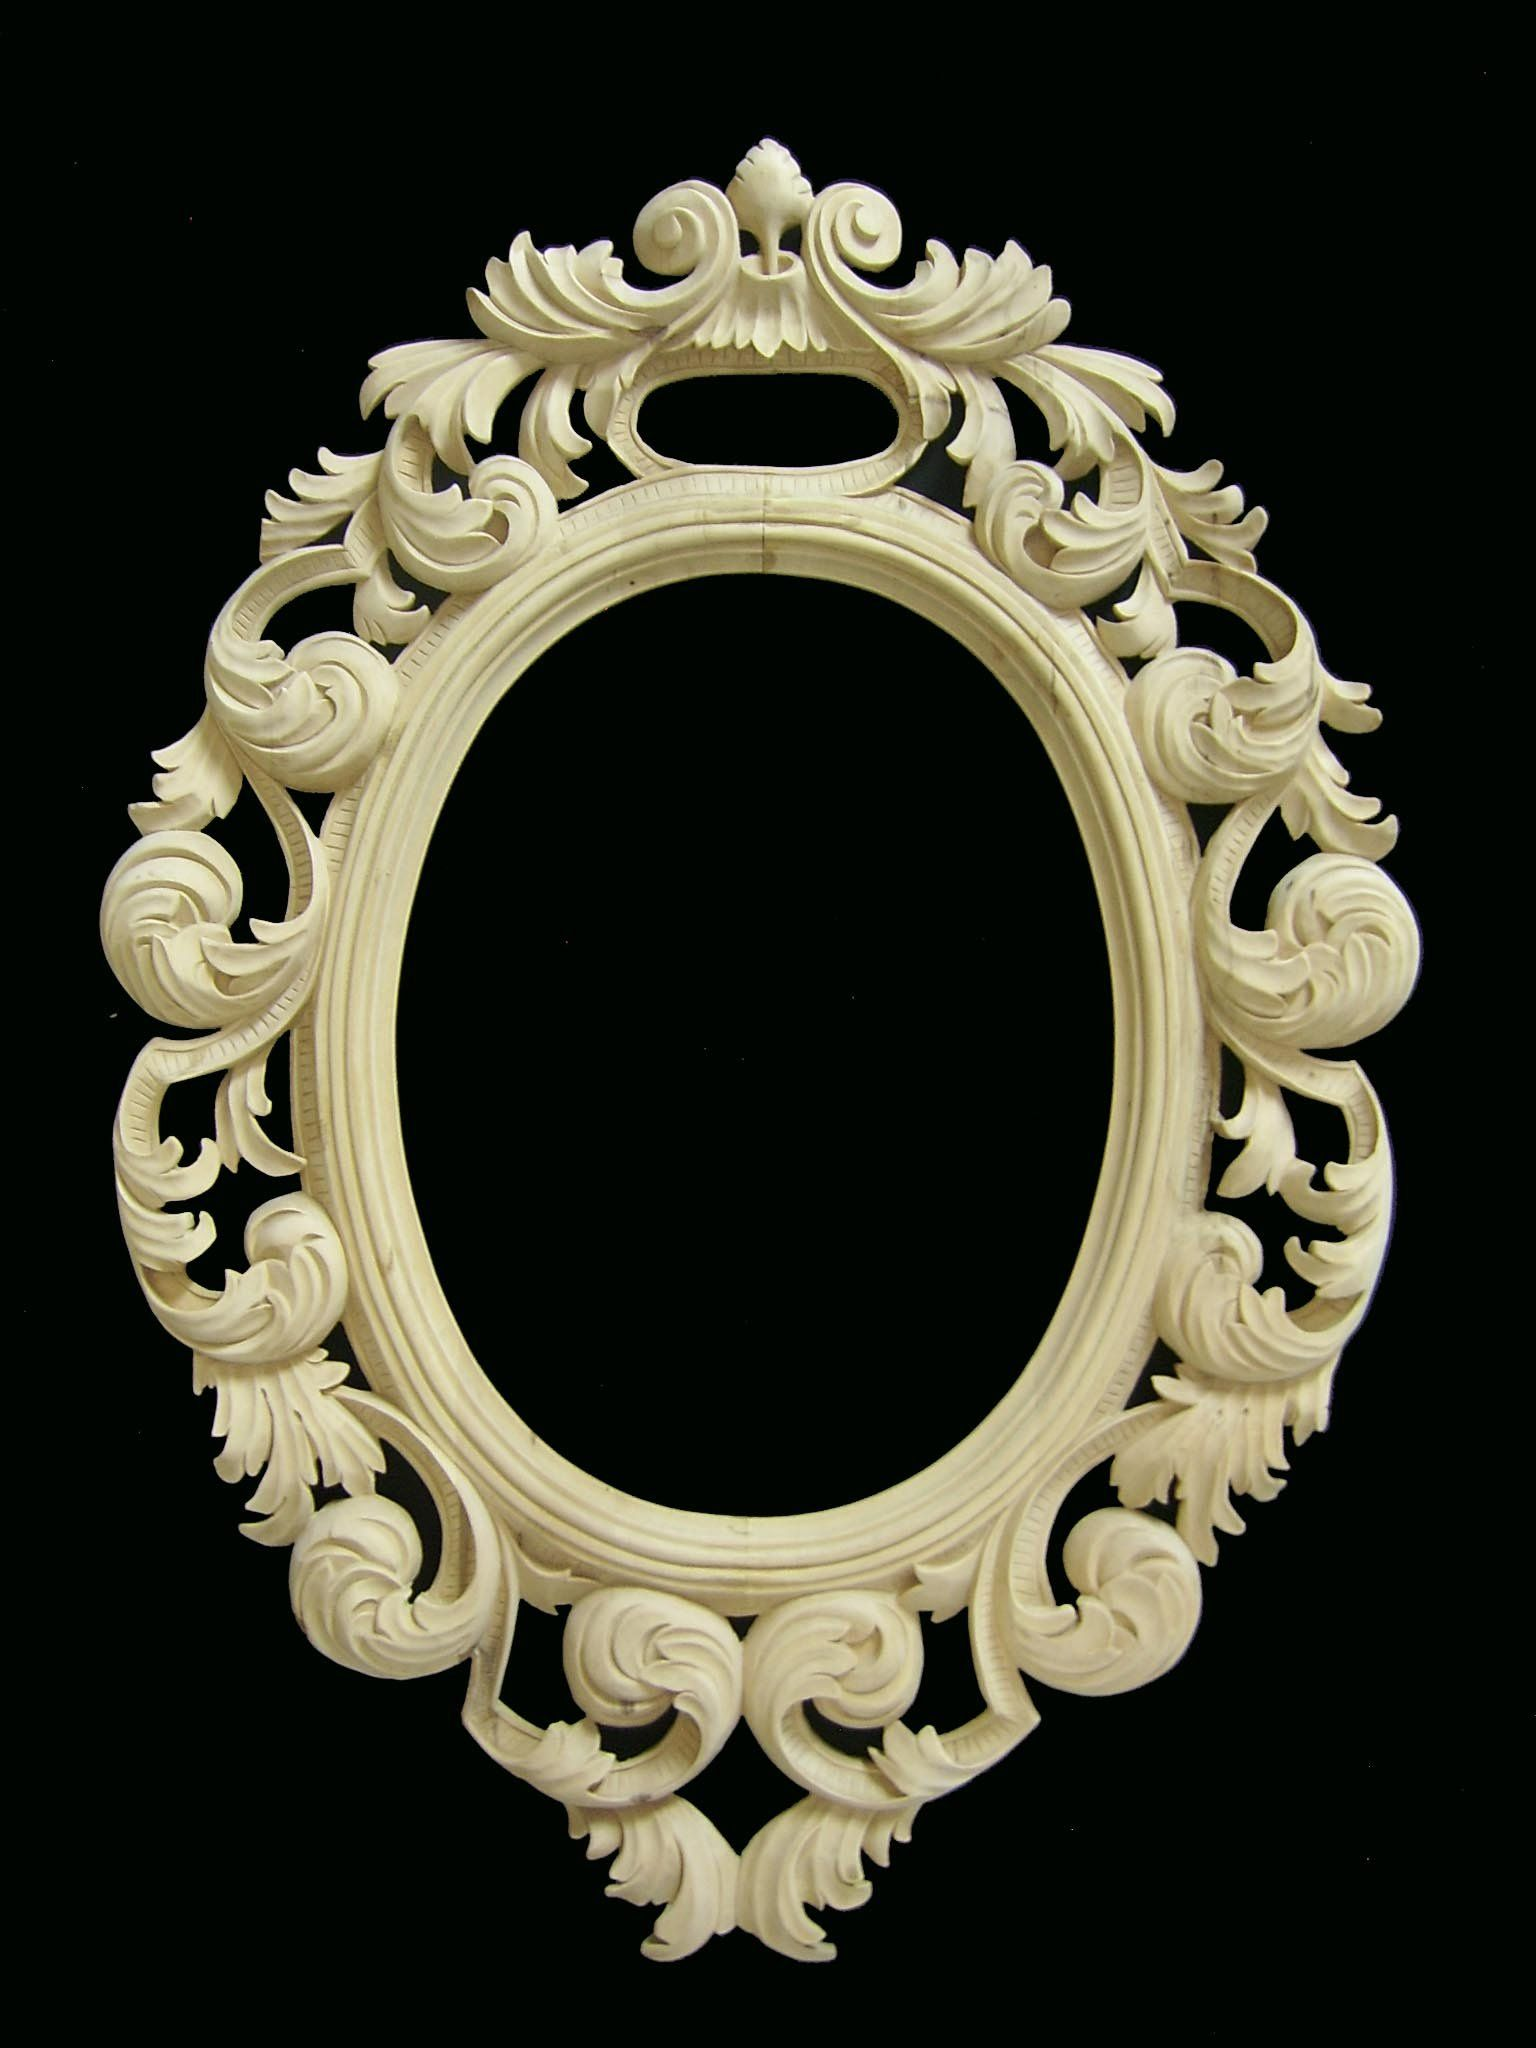 wooden mirror frame | Circus | Pinterest | Carving wood ...